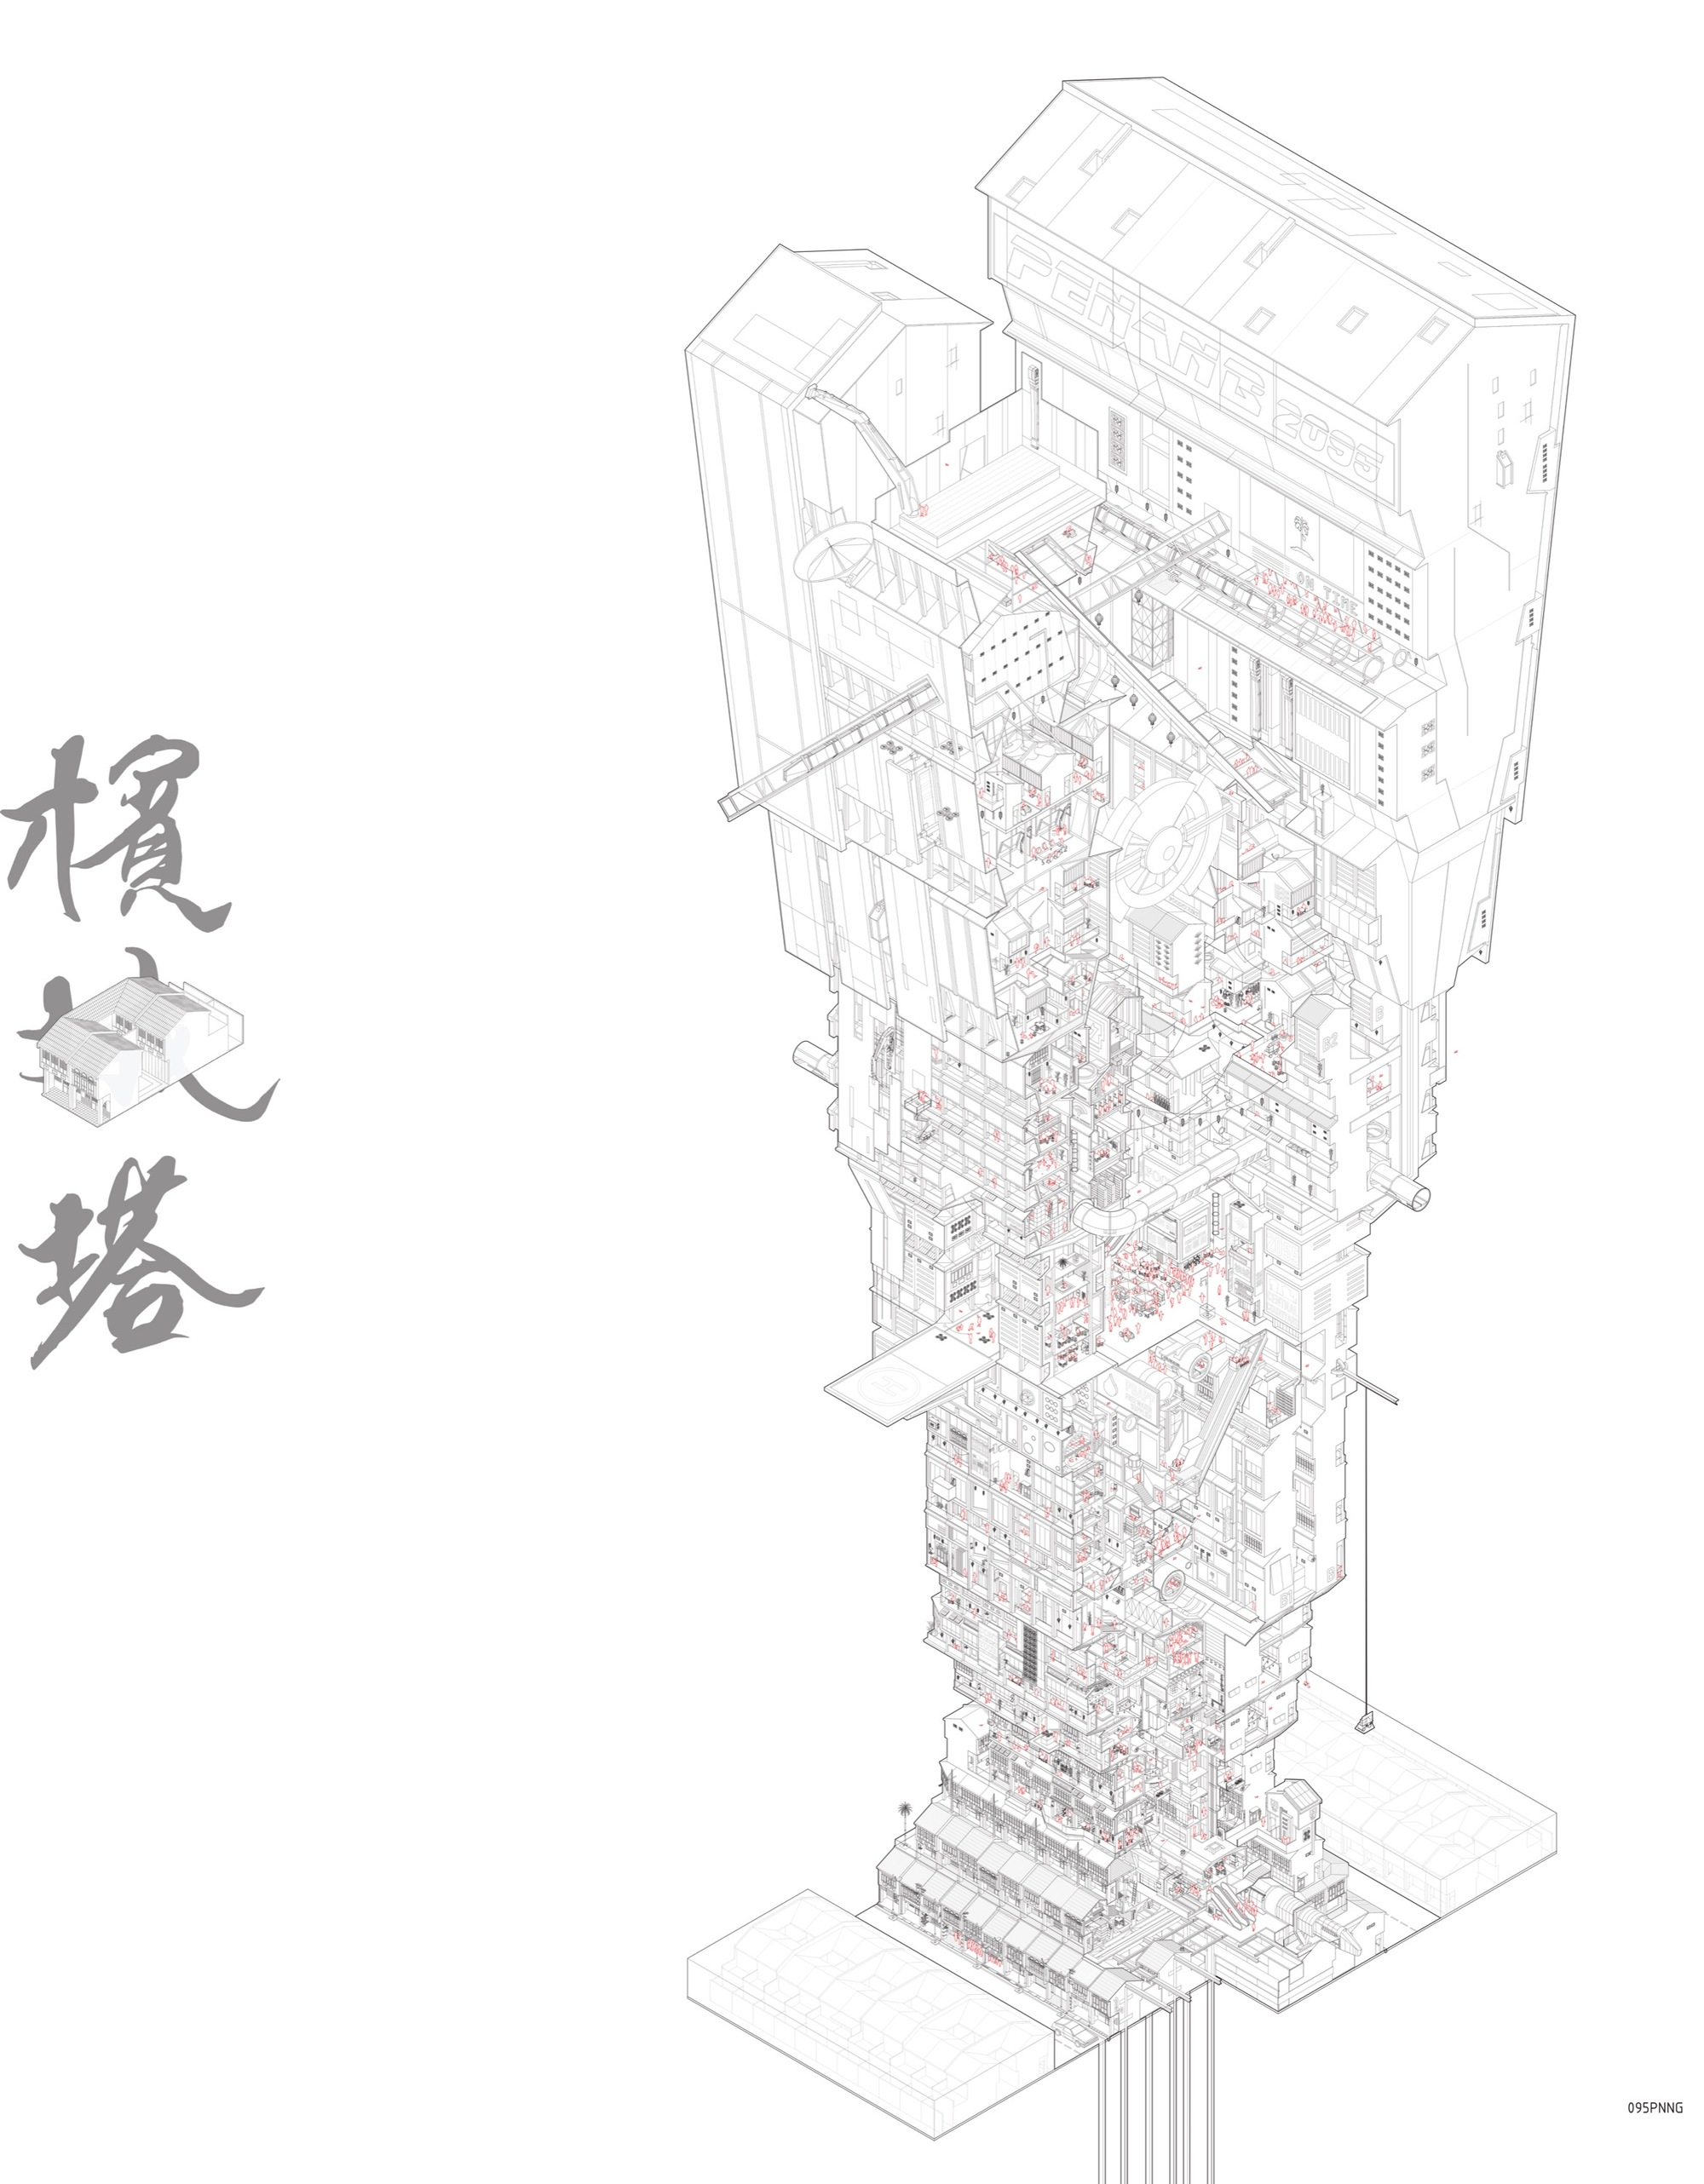 The best student drawings of 2018 awarded by the aarhus school of architecture